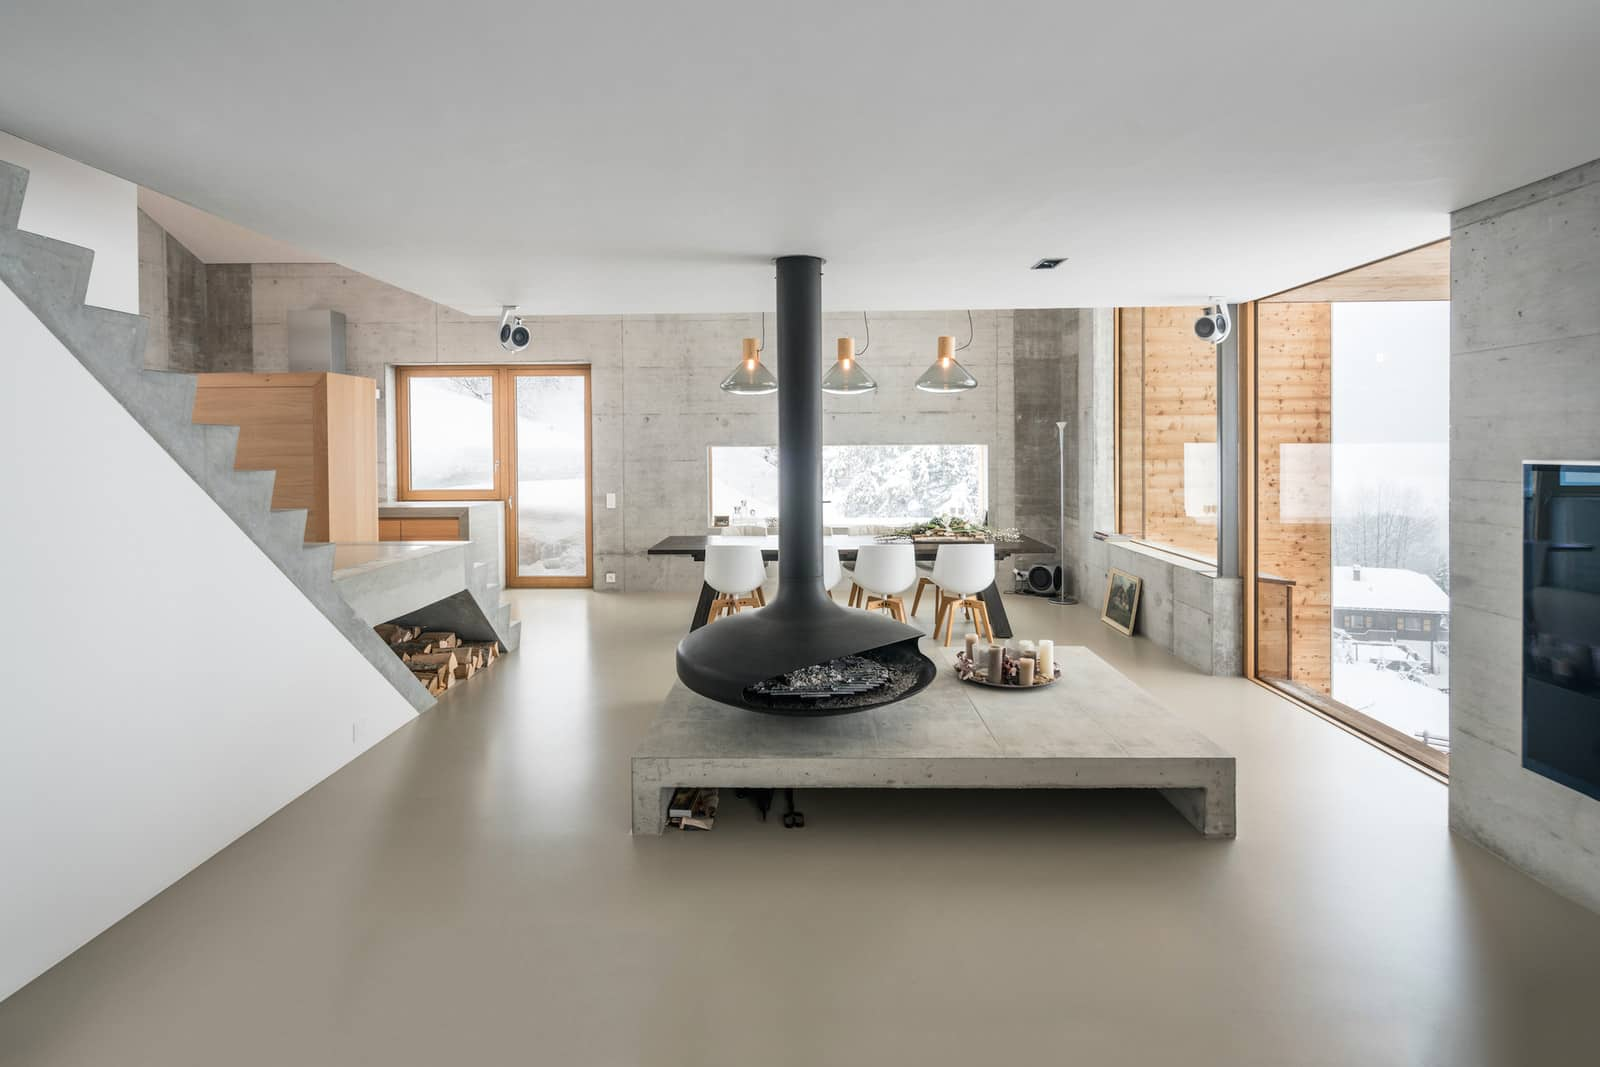 7 Things to Do to Avoid Home Buying Regrets. Great chalet house interior with central grandeur fireplace and hi-tech concrete firewood storage